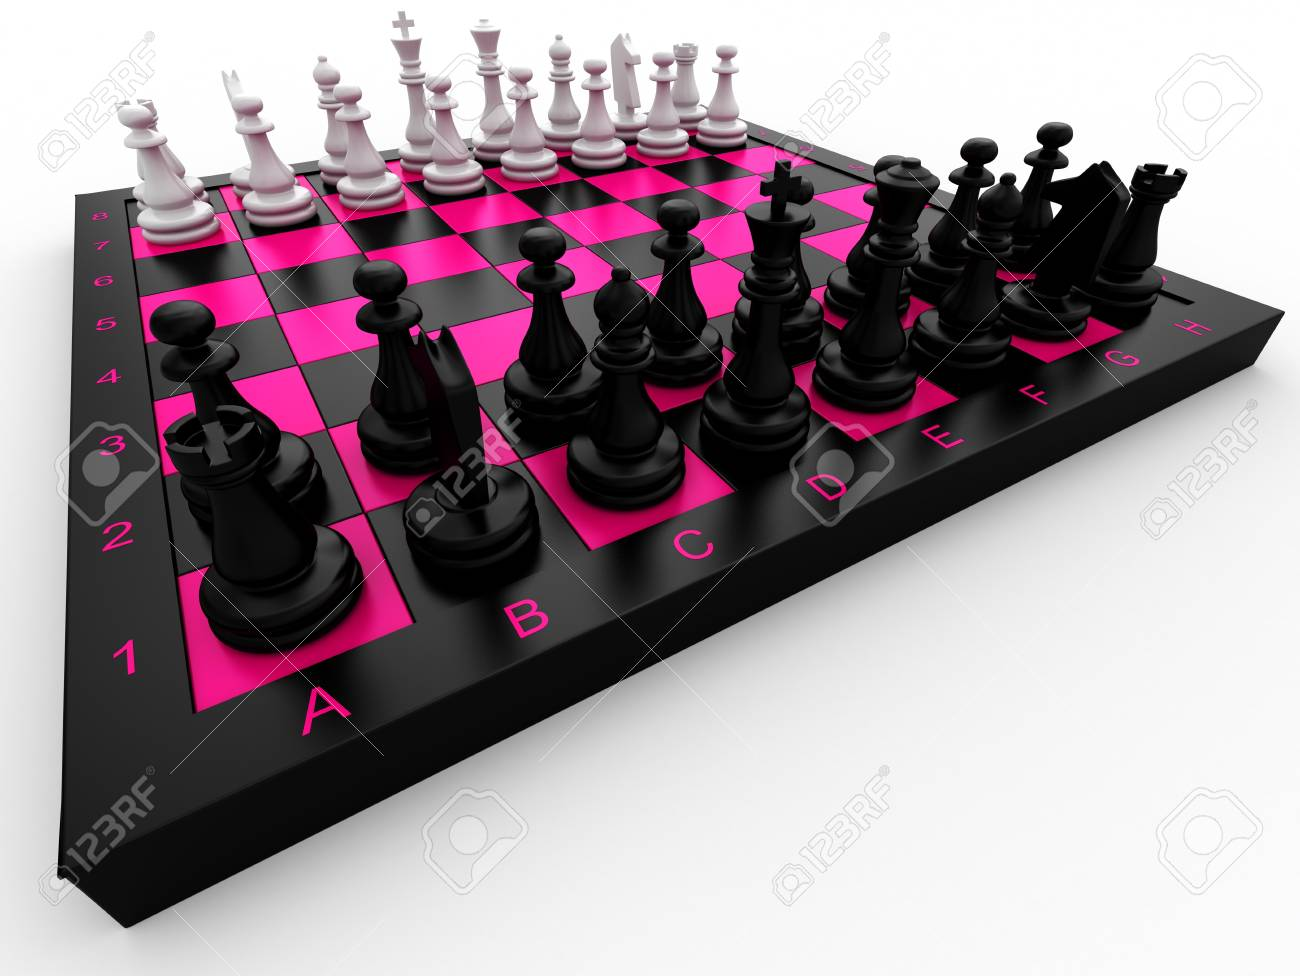 Chess pieces on a board on a white background Stock Photo - 13132085